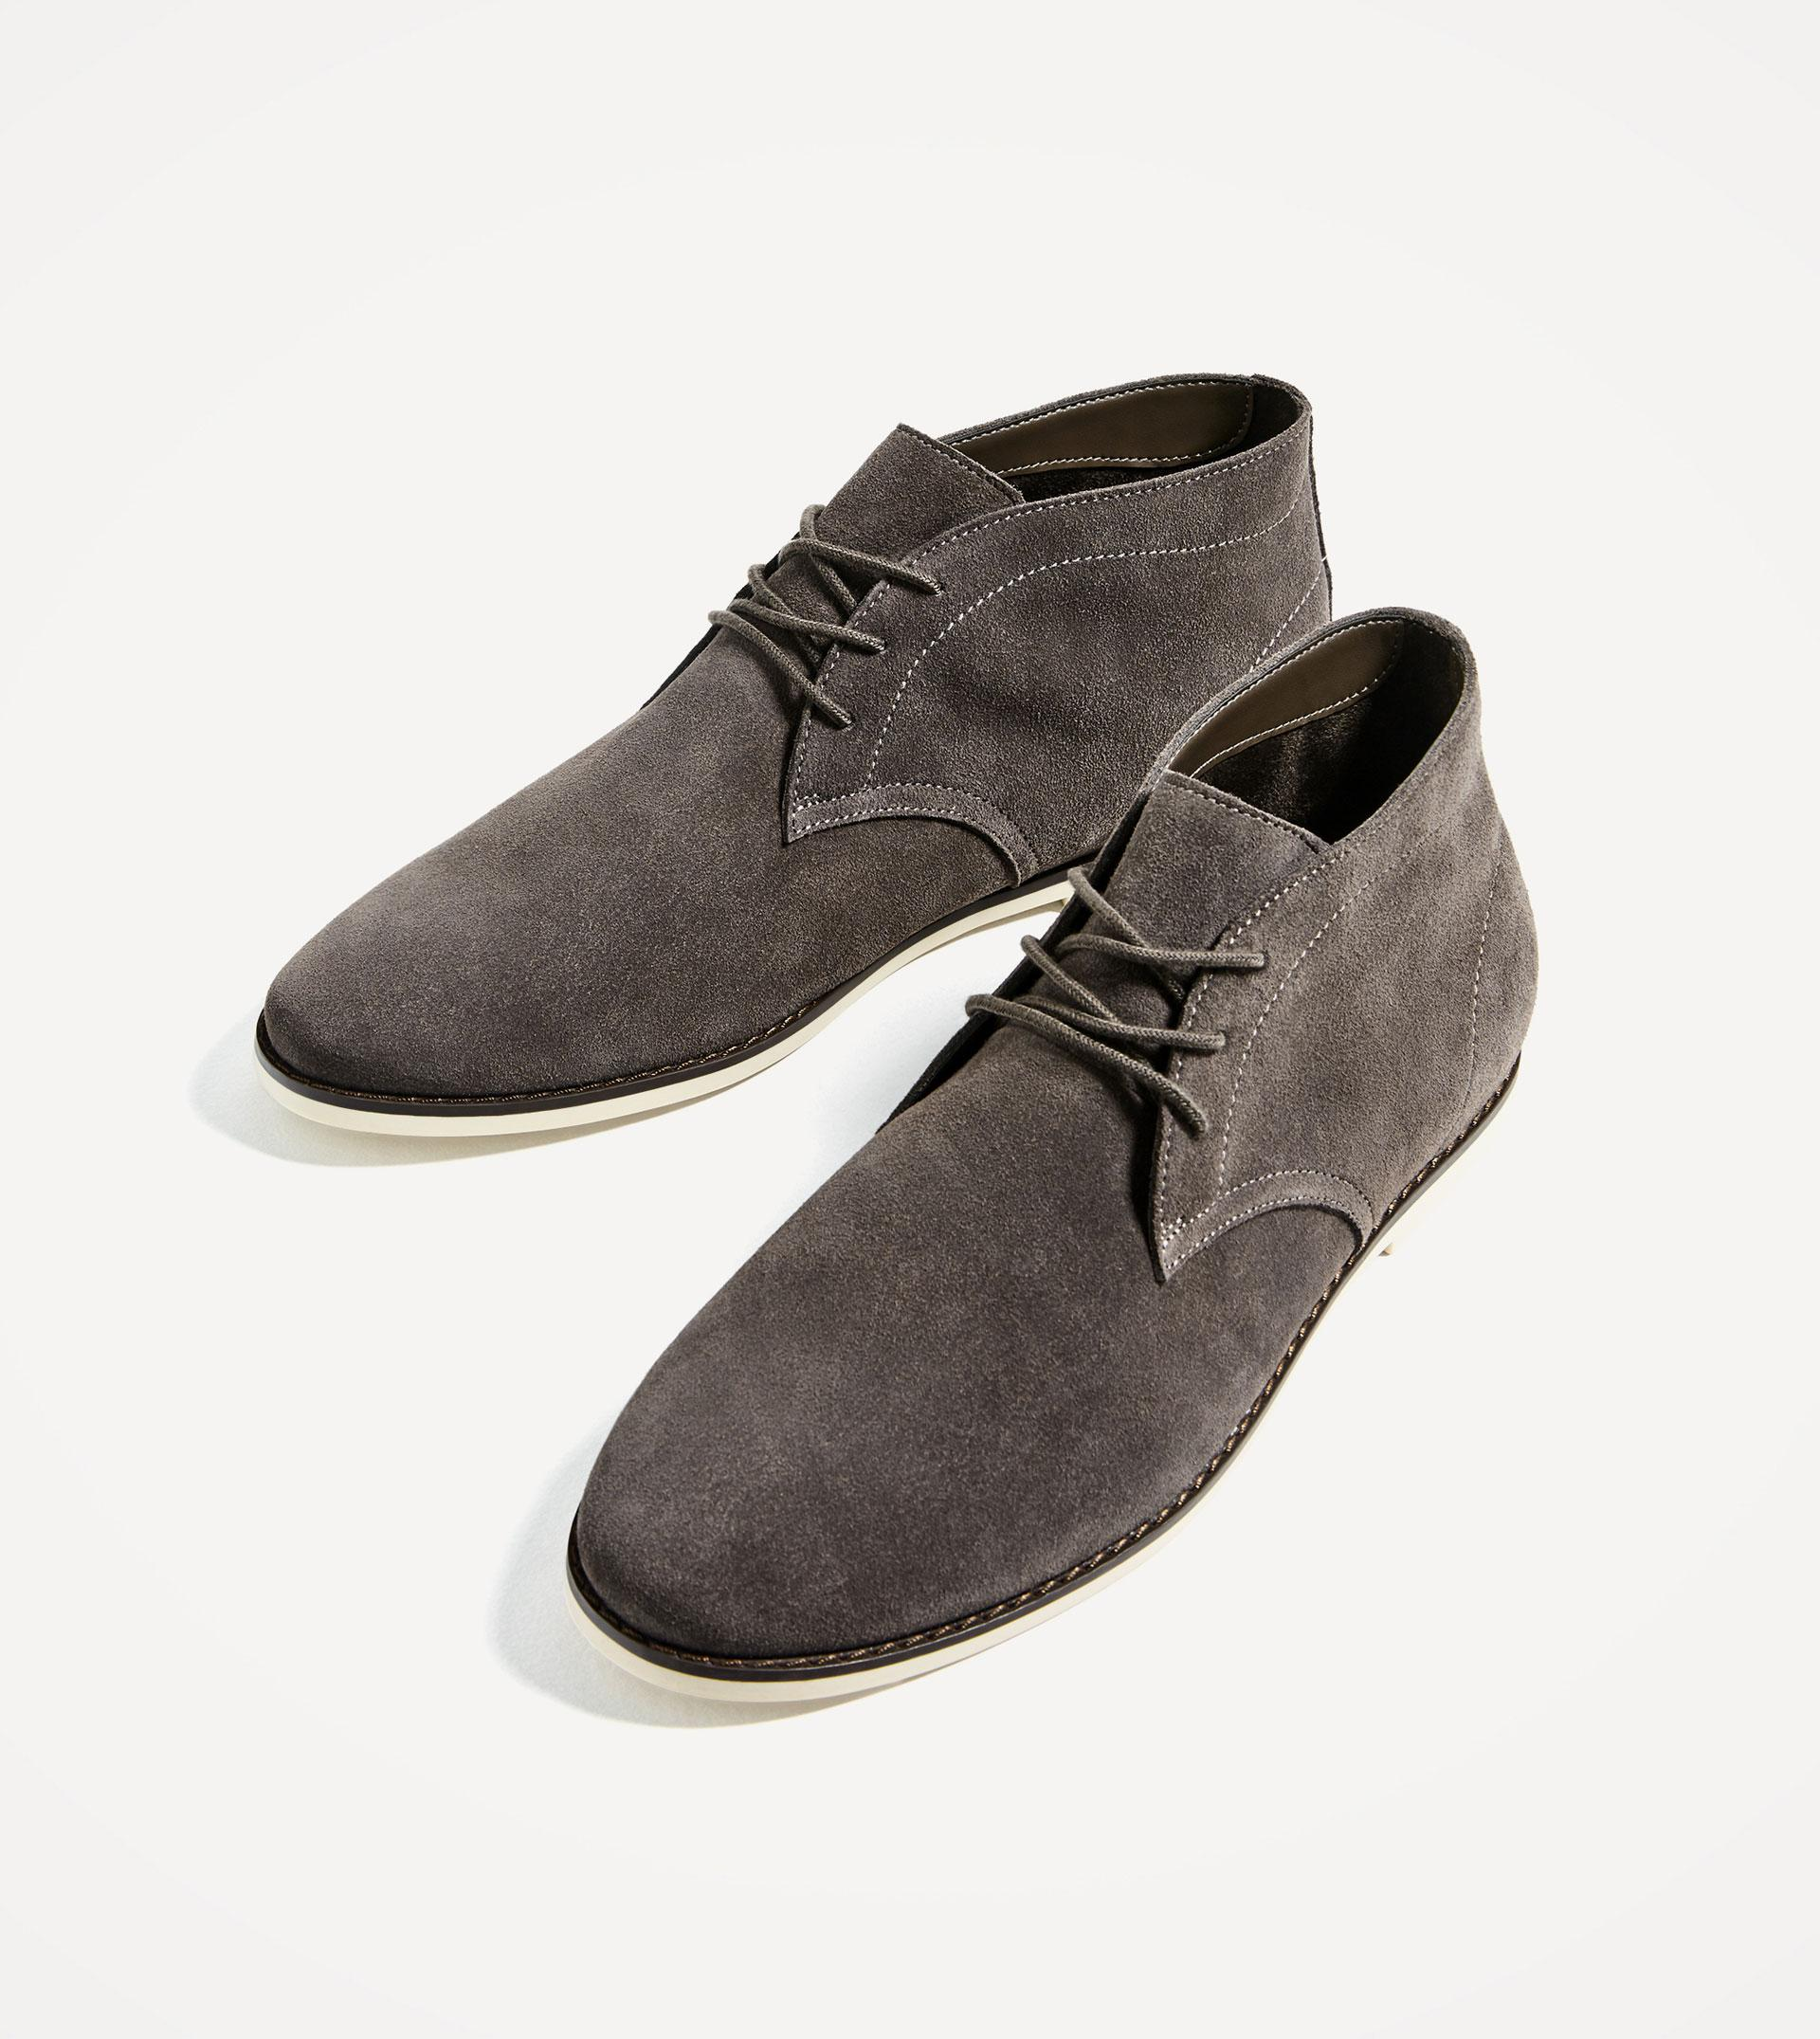 Zara Leather Ankle Boots With A White Sole In Gray For Men